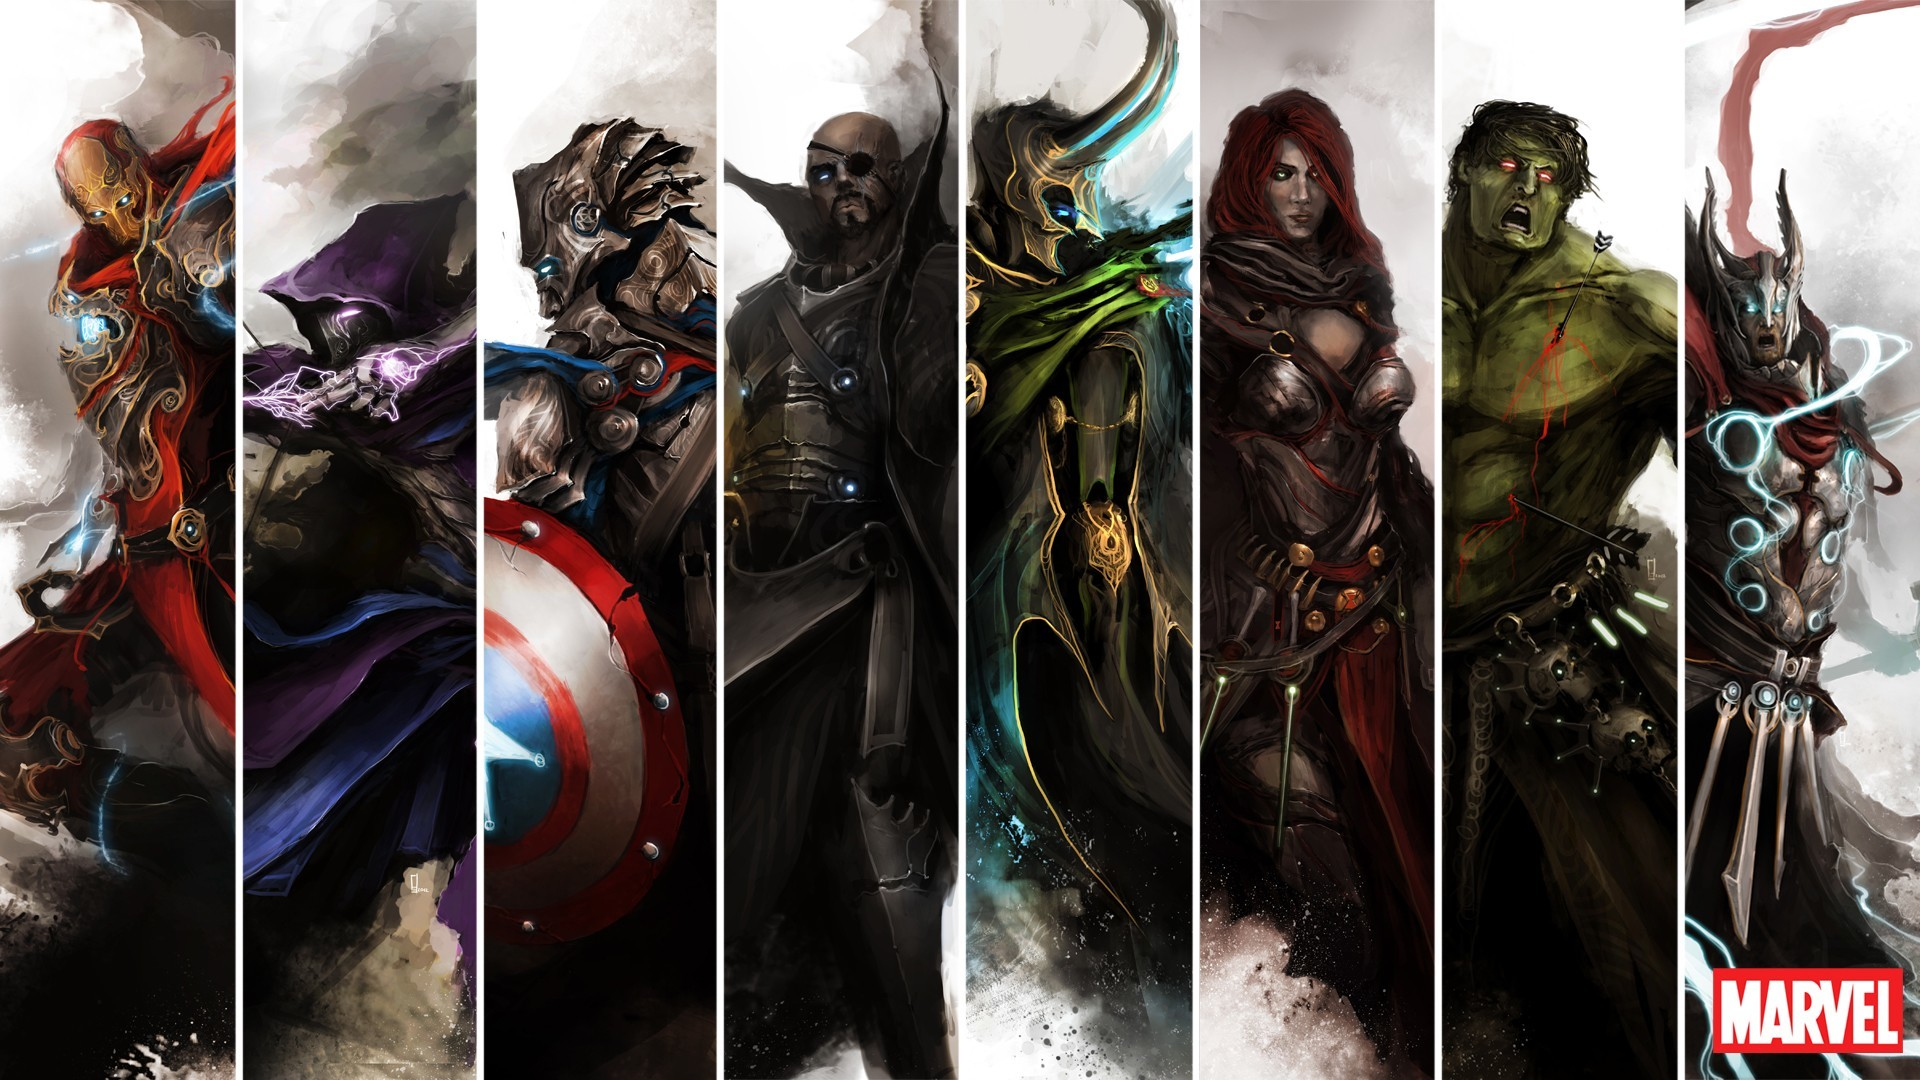 1920x1080 Marvel Wallpaper Wallpapers HD 1080p Desktop